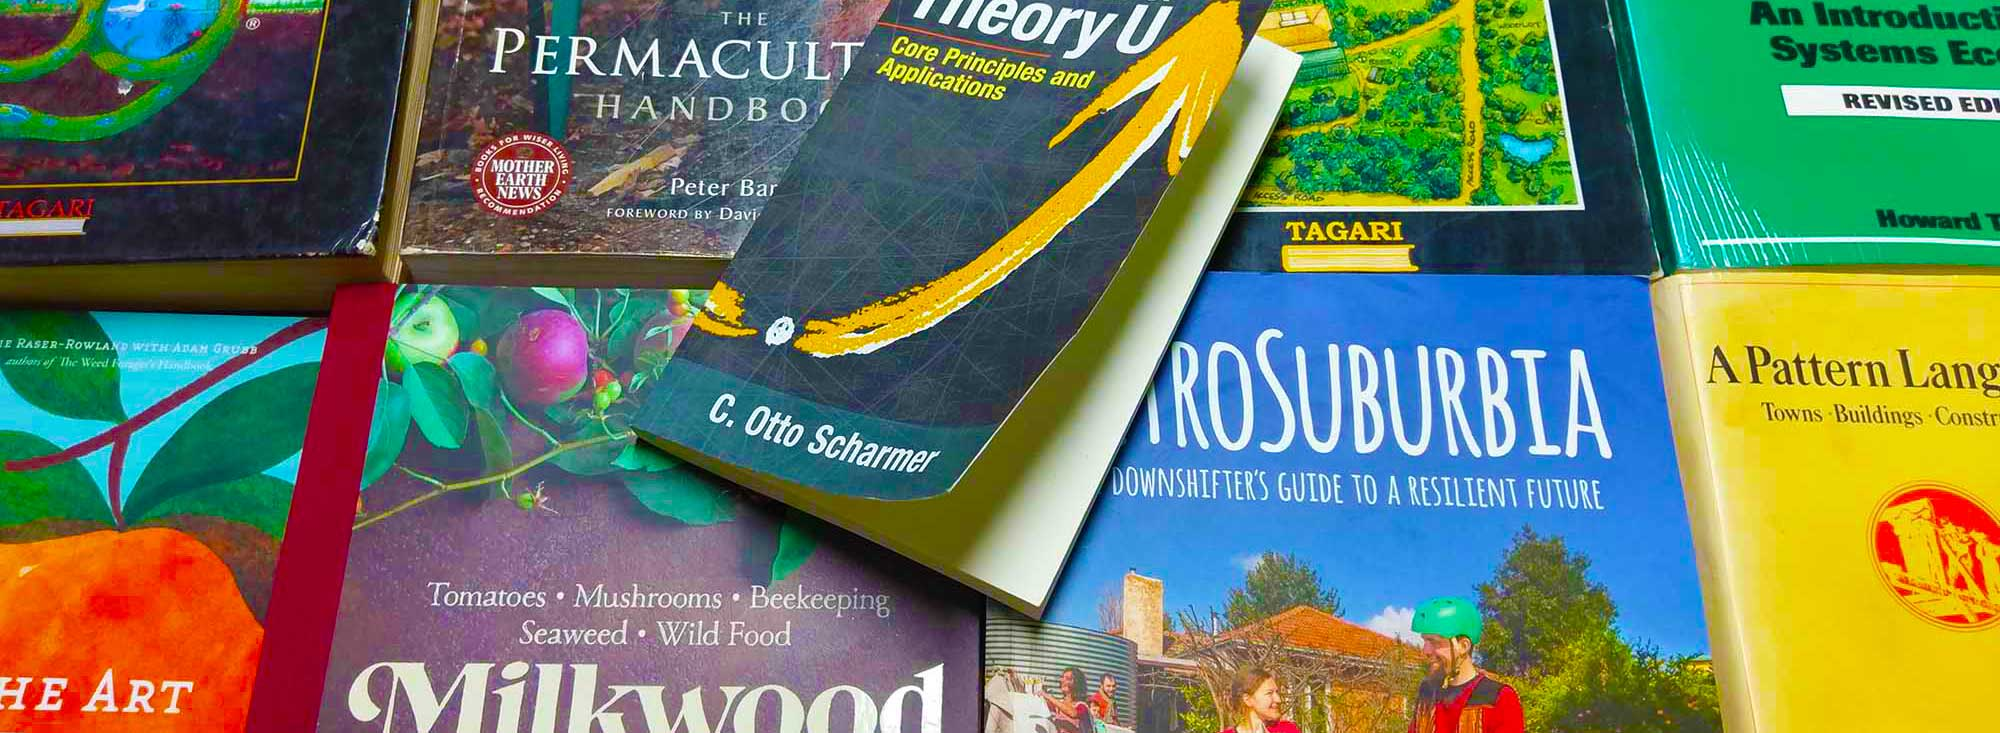 Influential permaculture literature